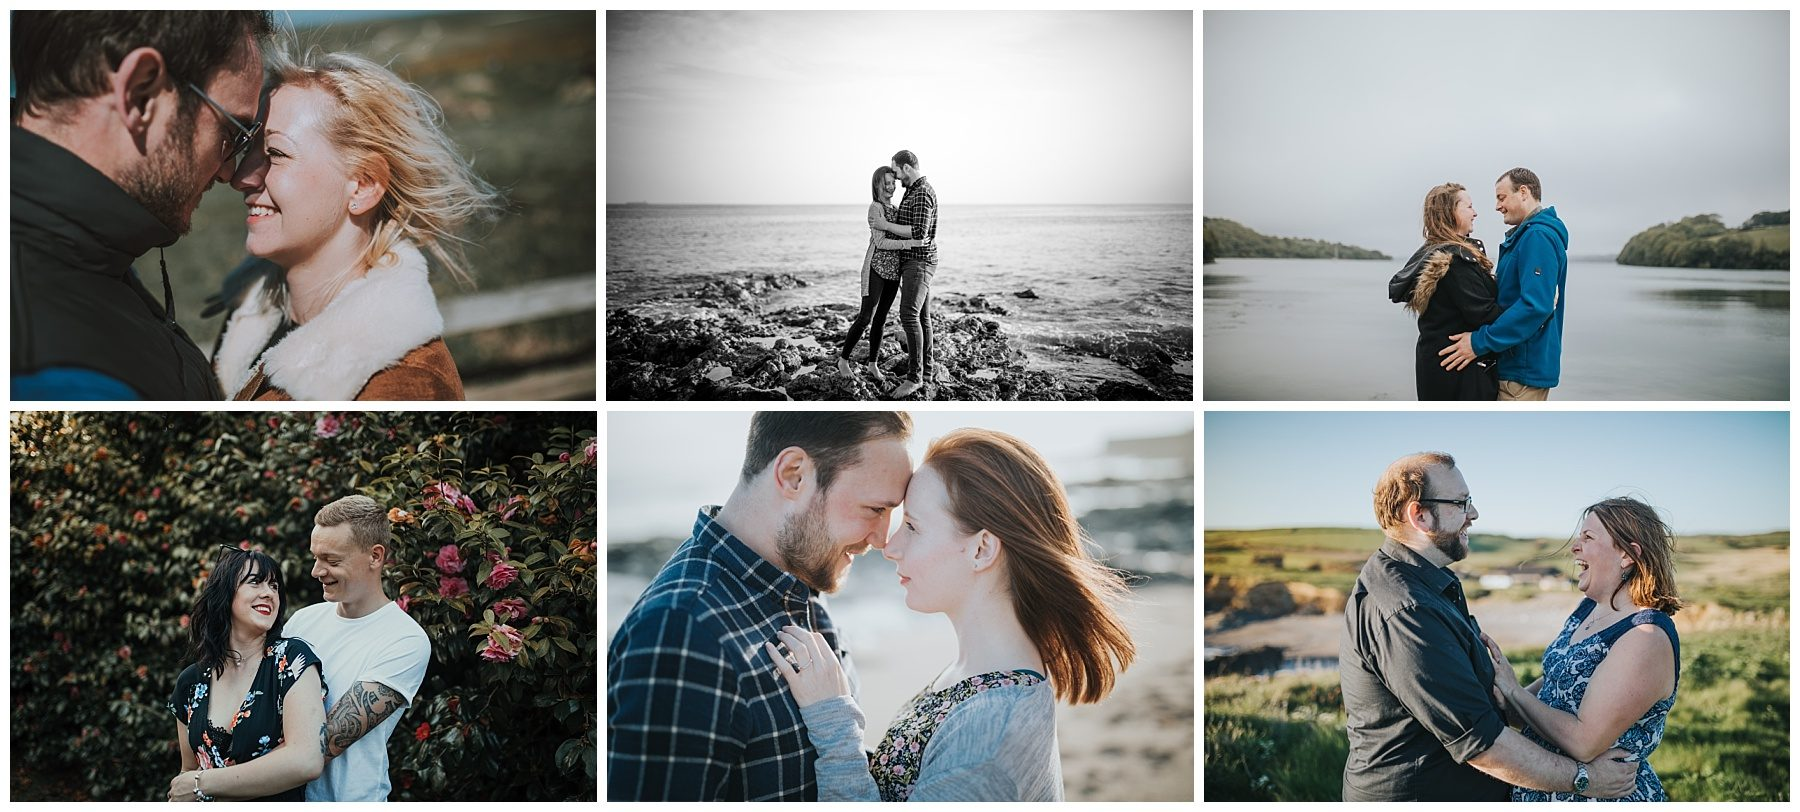 Engagement shoot on beach couple stood on rock on beach in Cornwall